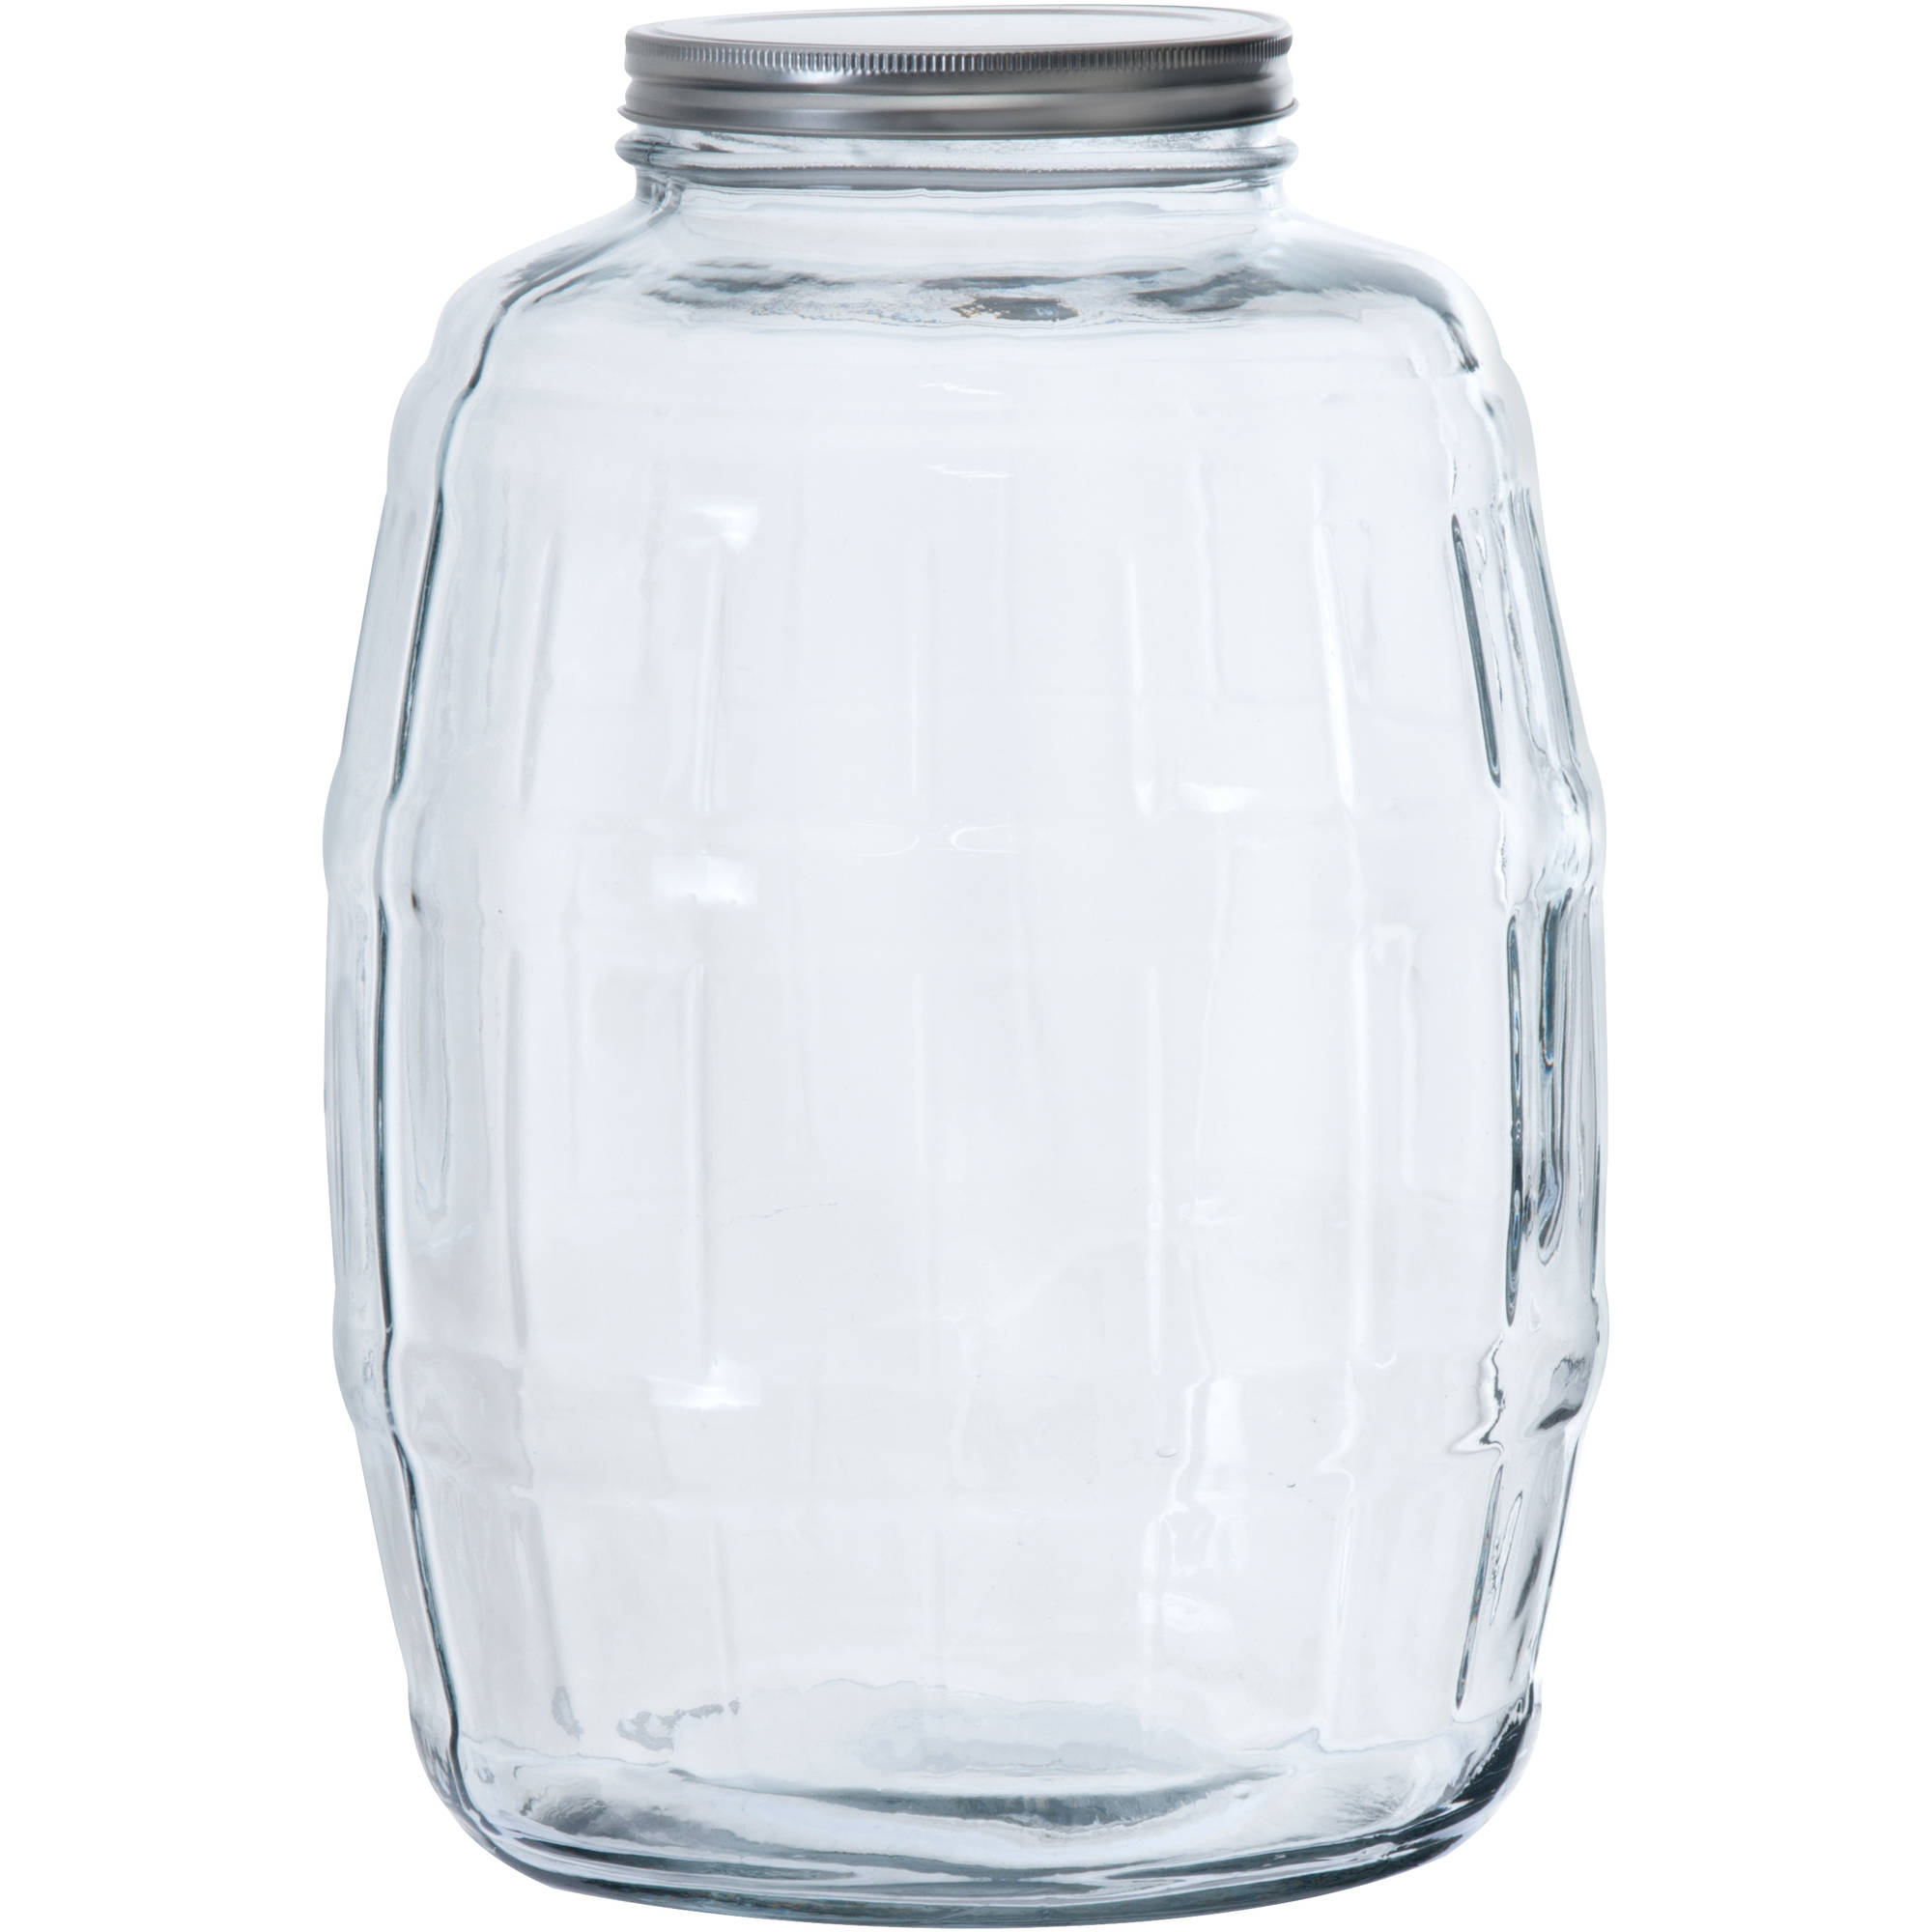 Huge Glass Cookie Jar Mainstays 67 Oz Clear Glass Jar With Clamp Lid Walmart